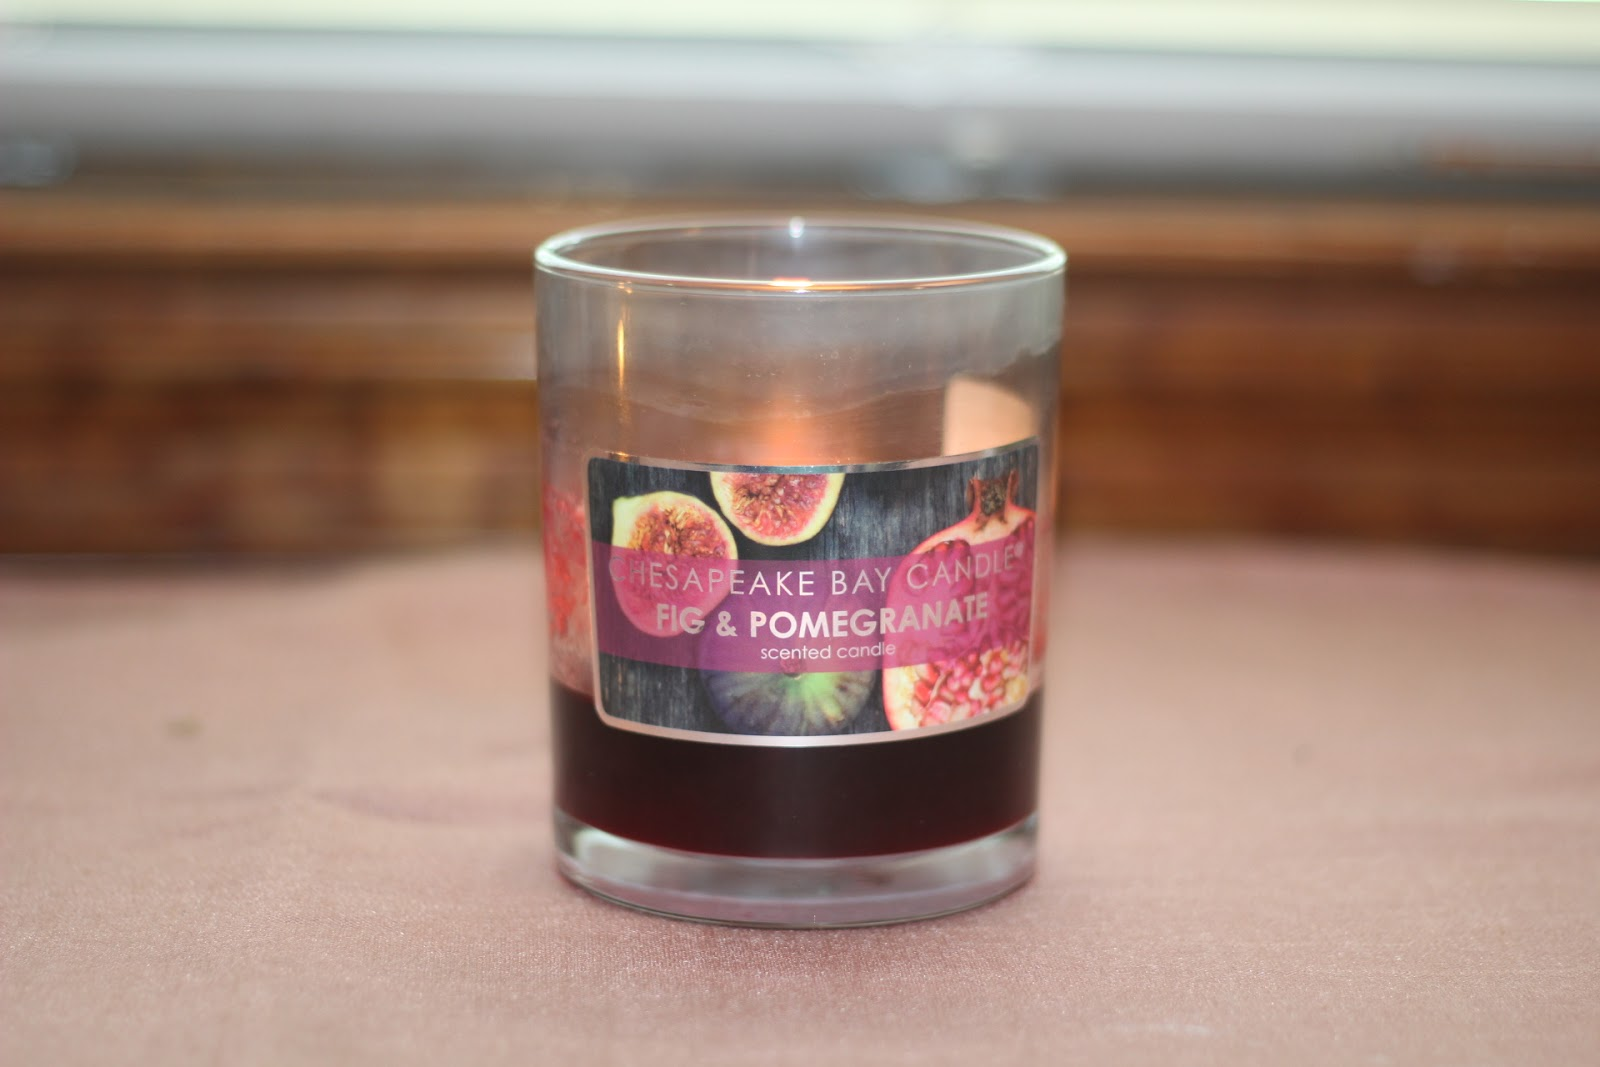 Chesapeake Bay Brookside Candles NightmaresNEVER again Scent